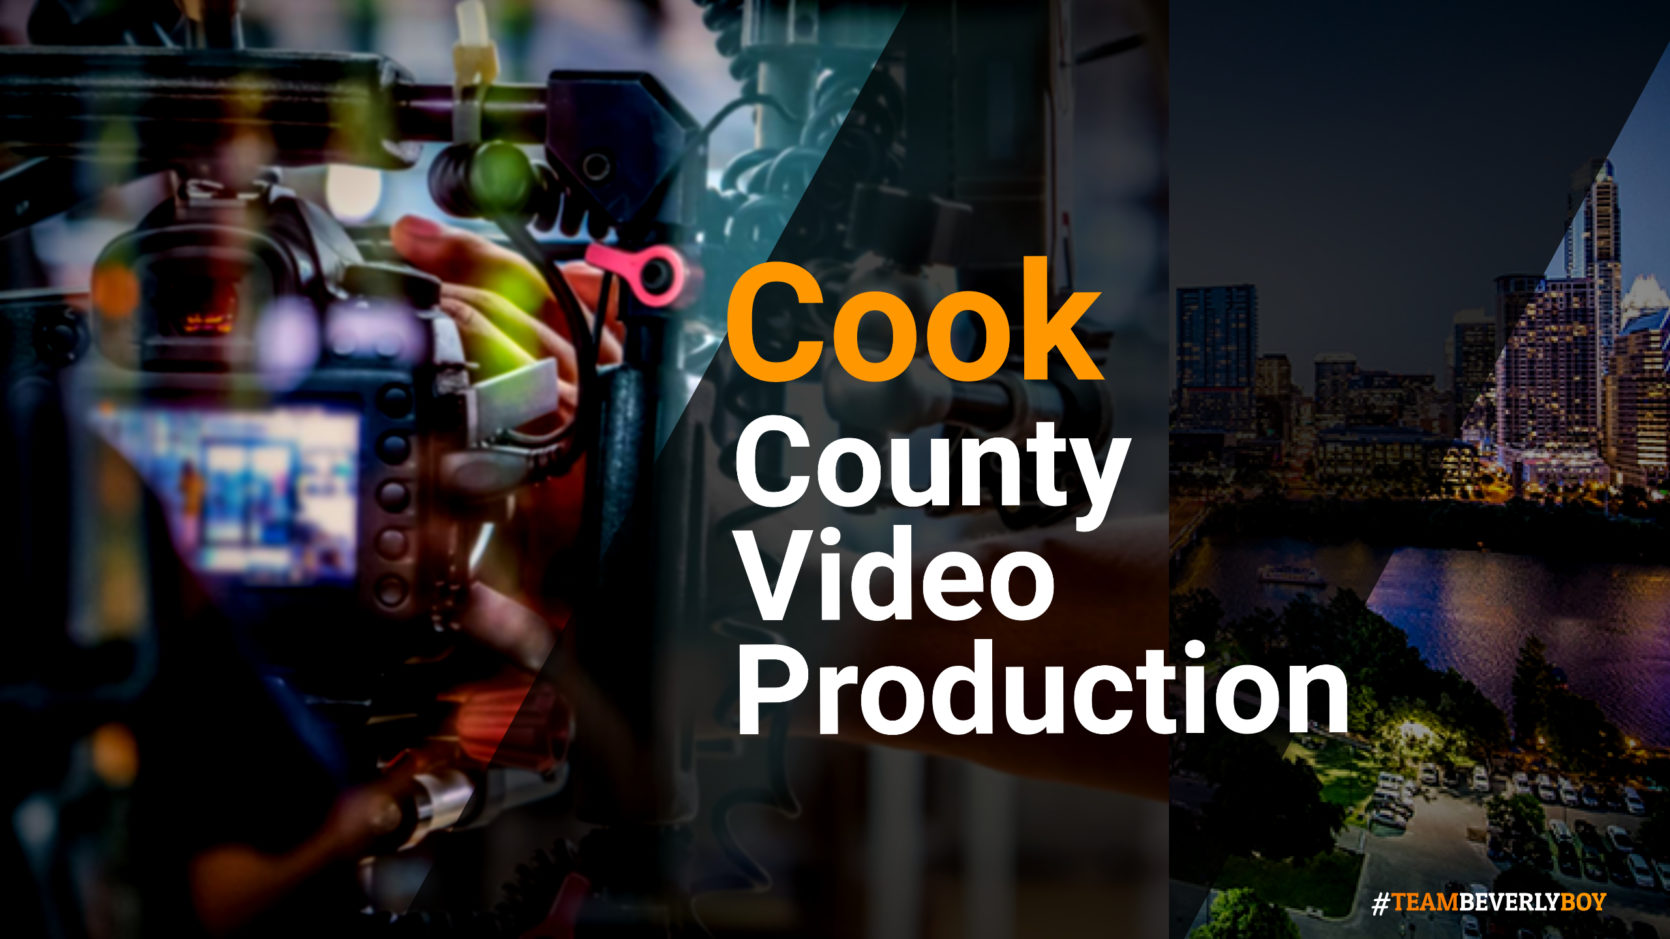 Cook county video production